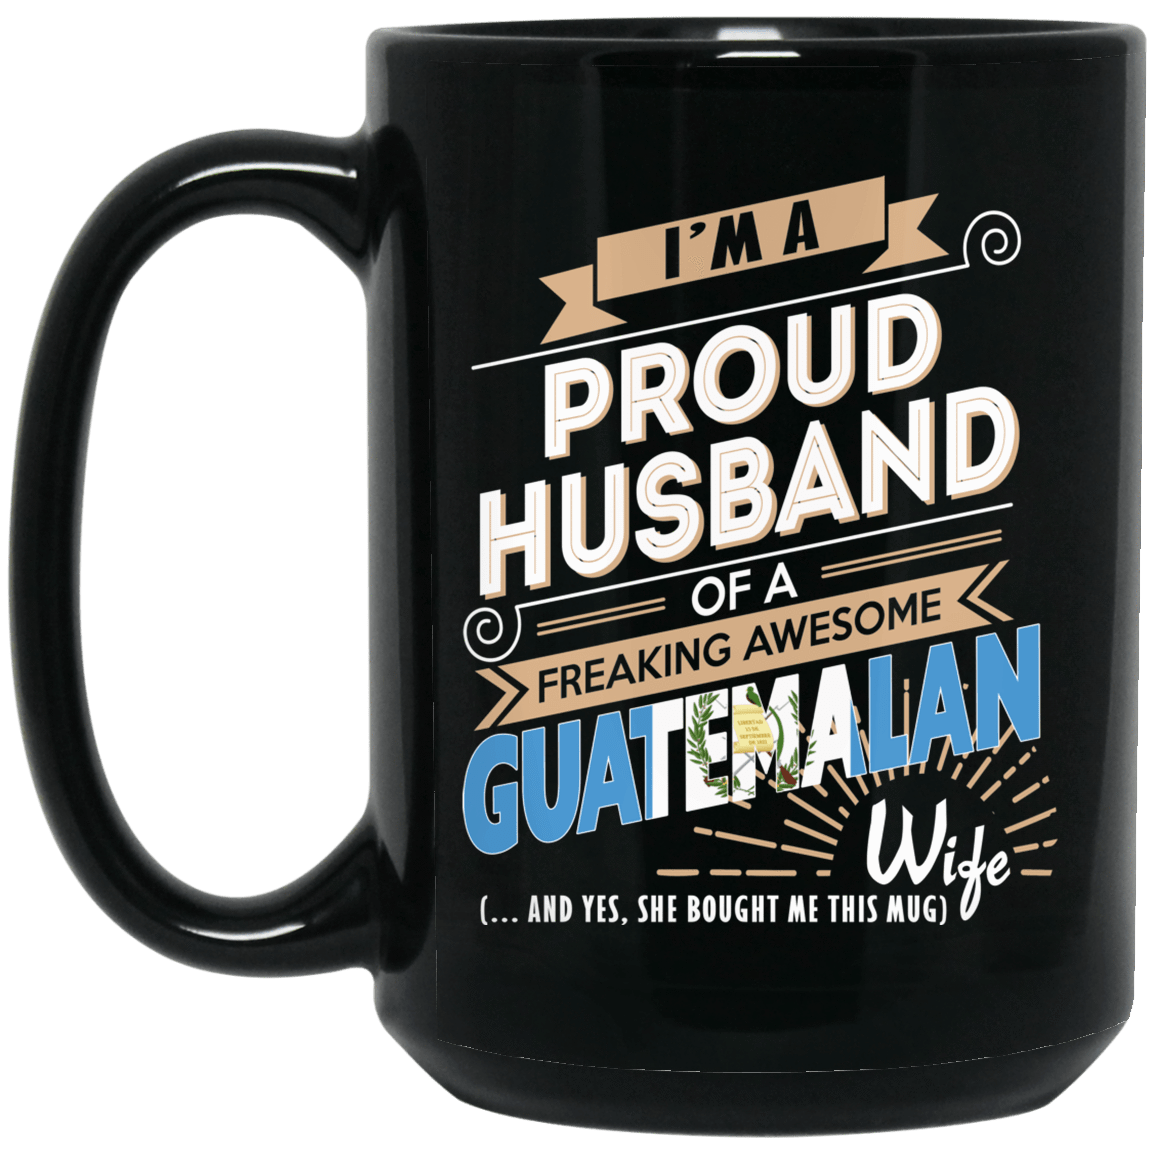 Proud Husband Of A Freaking Awesome Guatemalan Wife Mug 1066-10182-72136524-49311 - Tee Ript